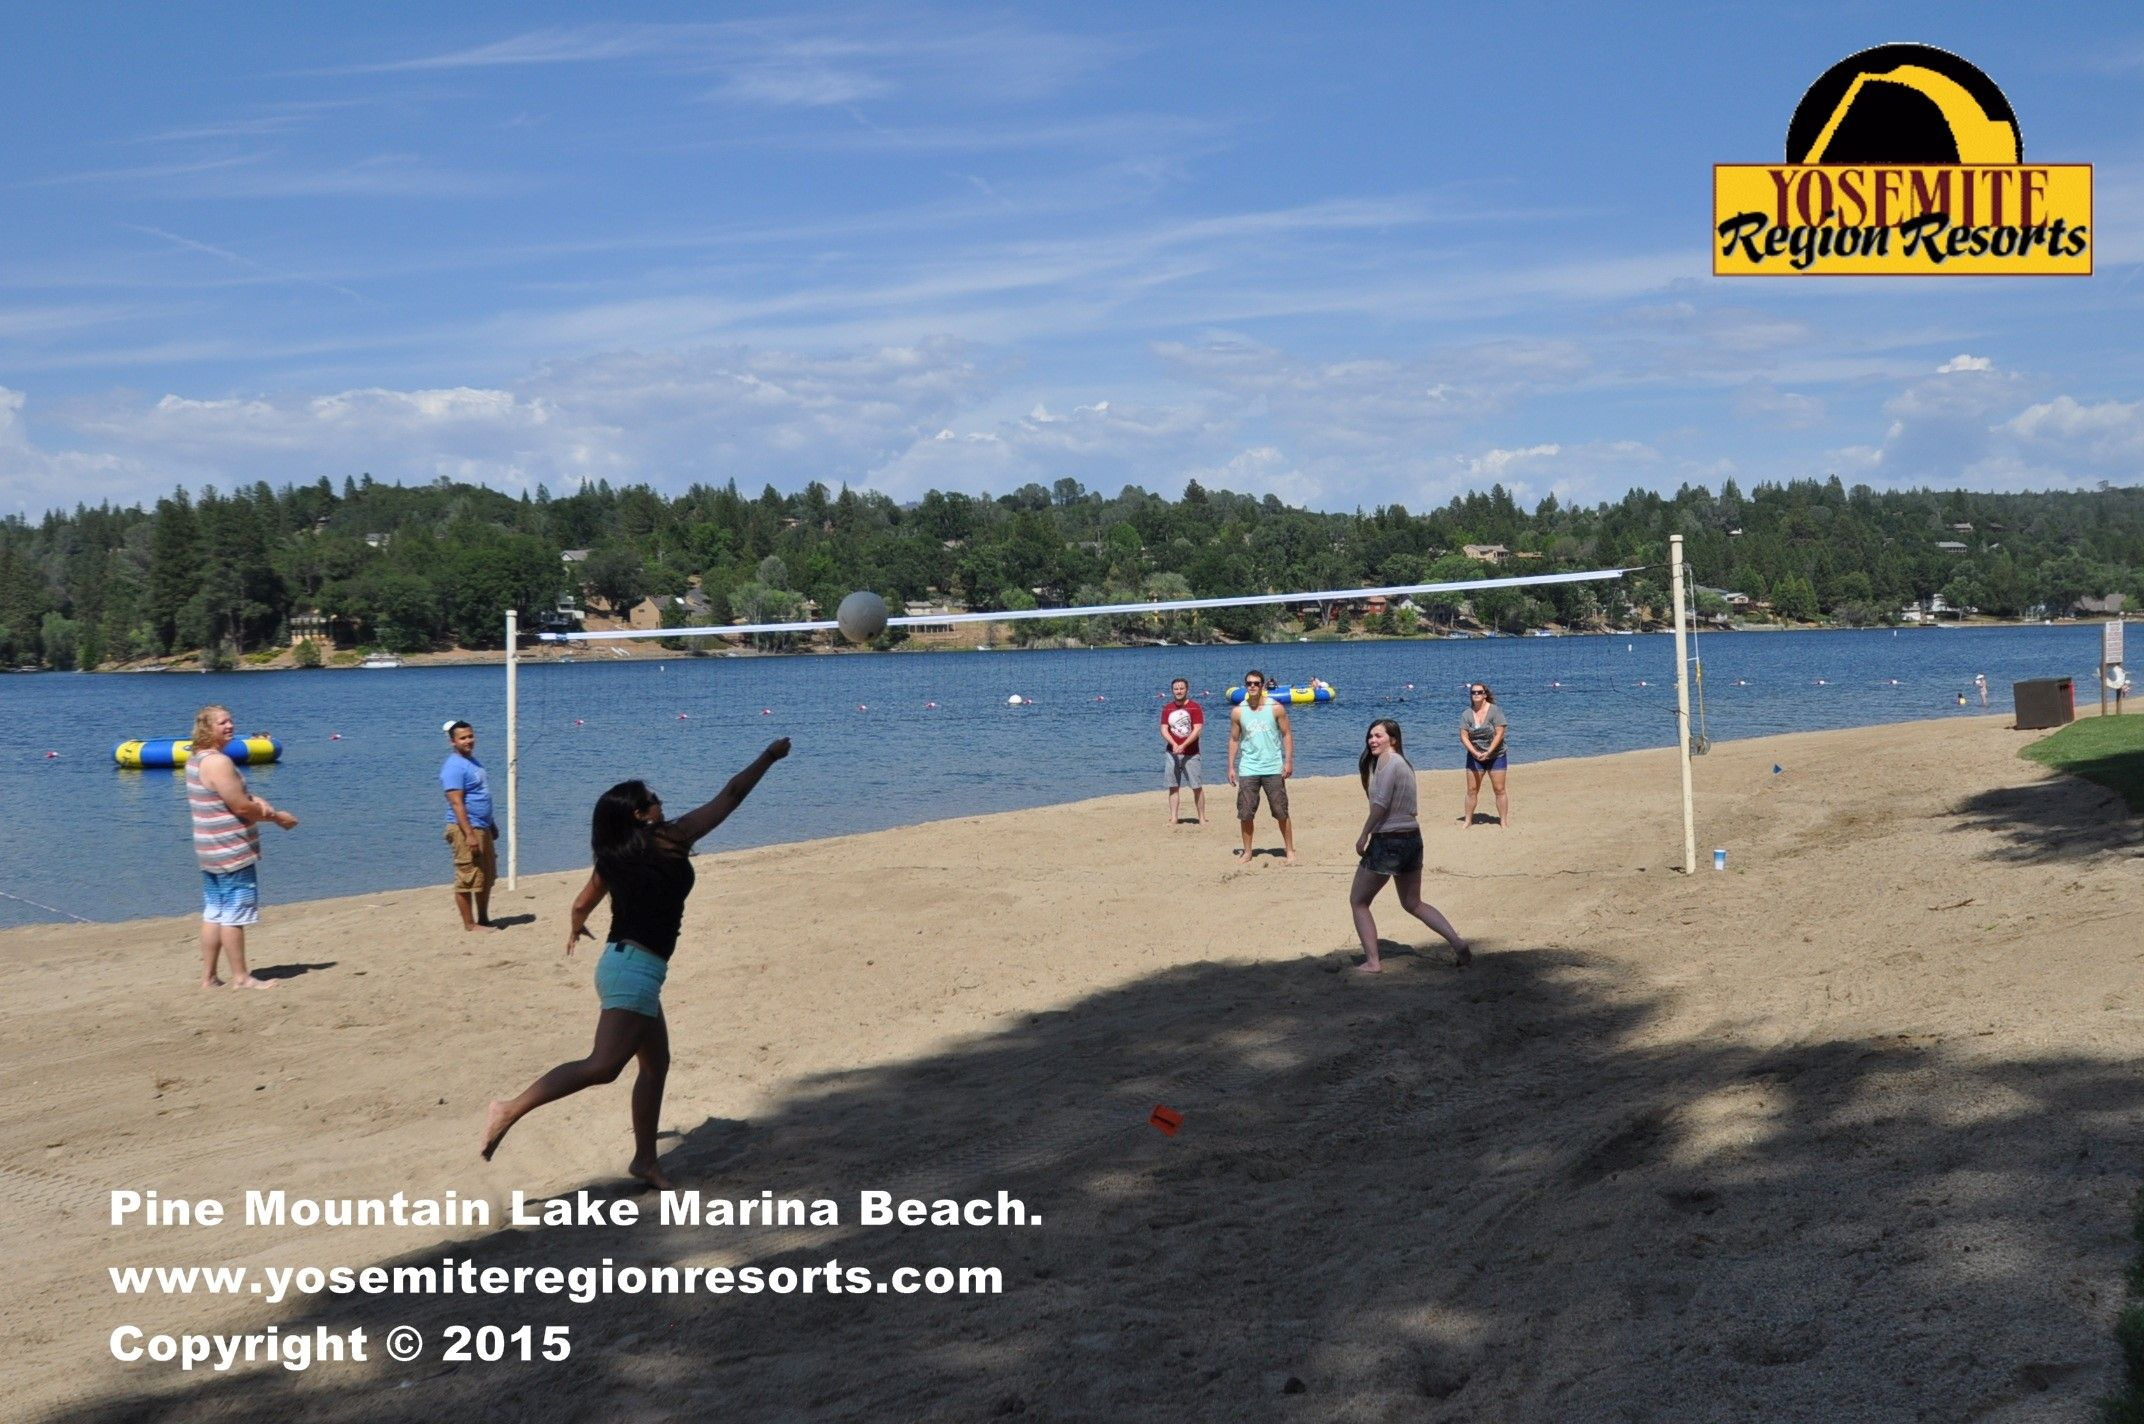 Pine Mountain Lake Vacation Rentals Real Estate Sales Lakevacations Nearyosemite Pinemountain Pine Mountain Lake Lake Vacation Rental Lakes In California